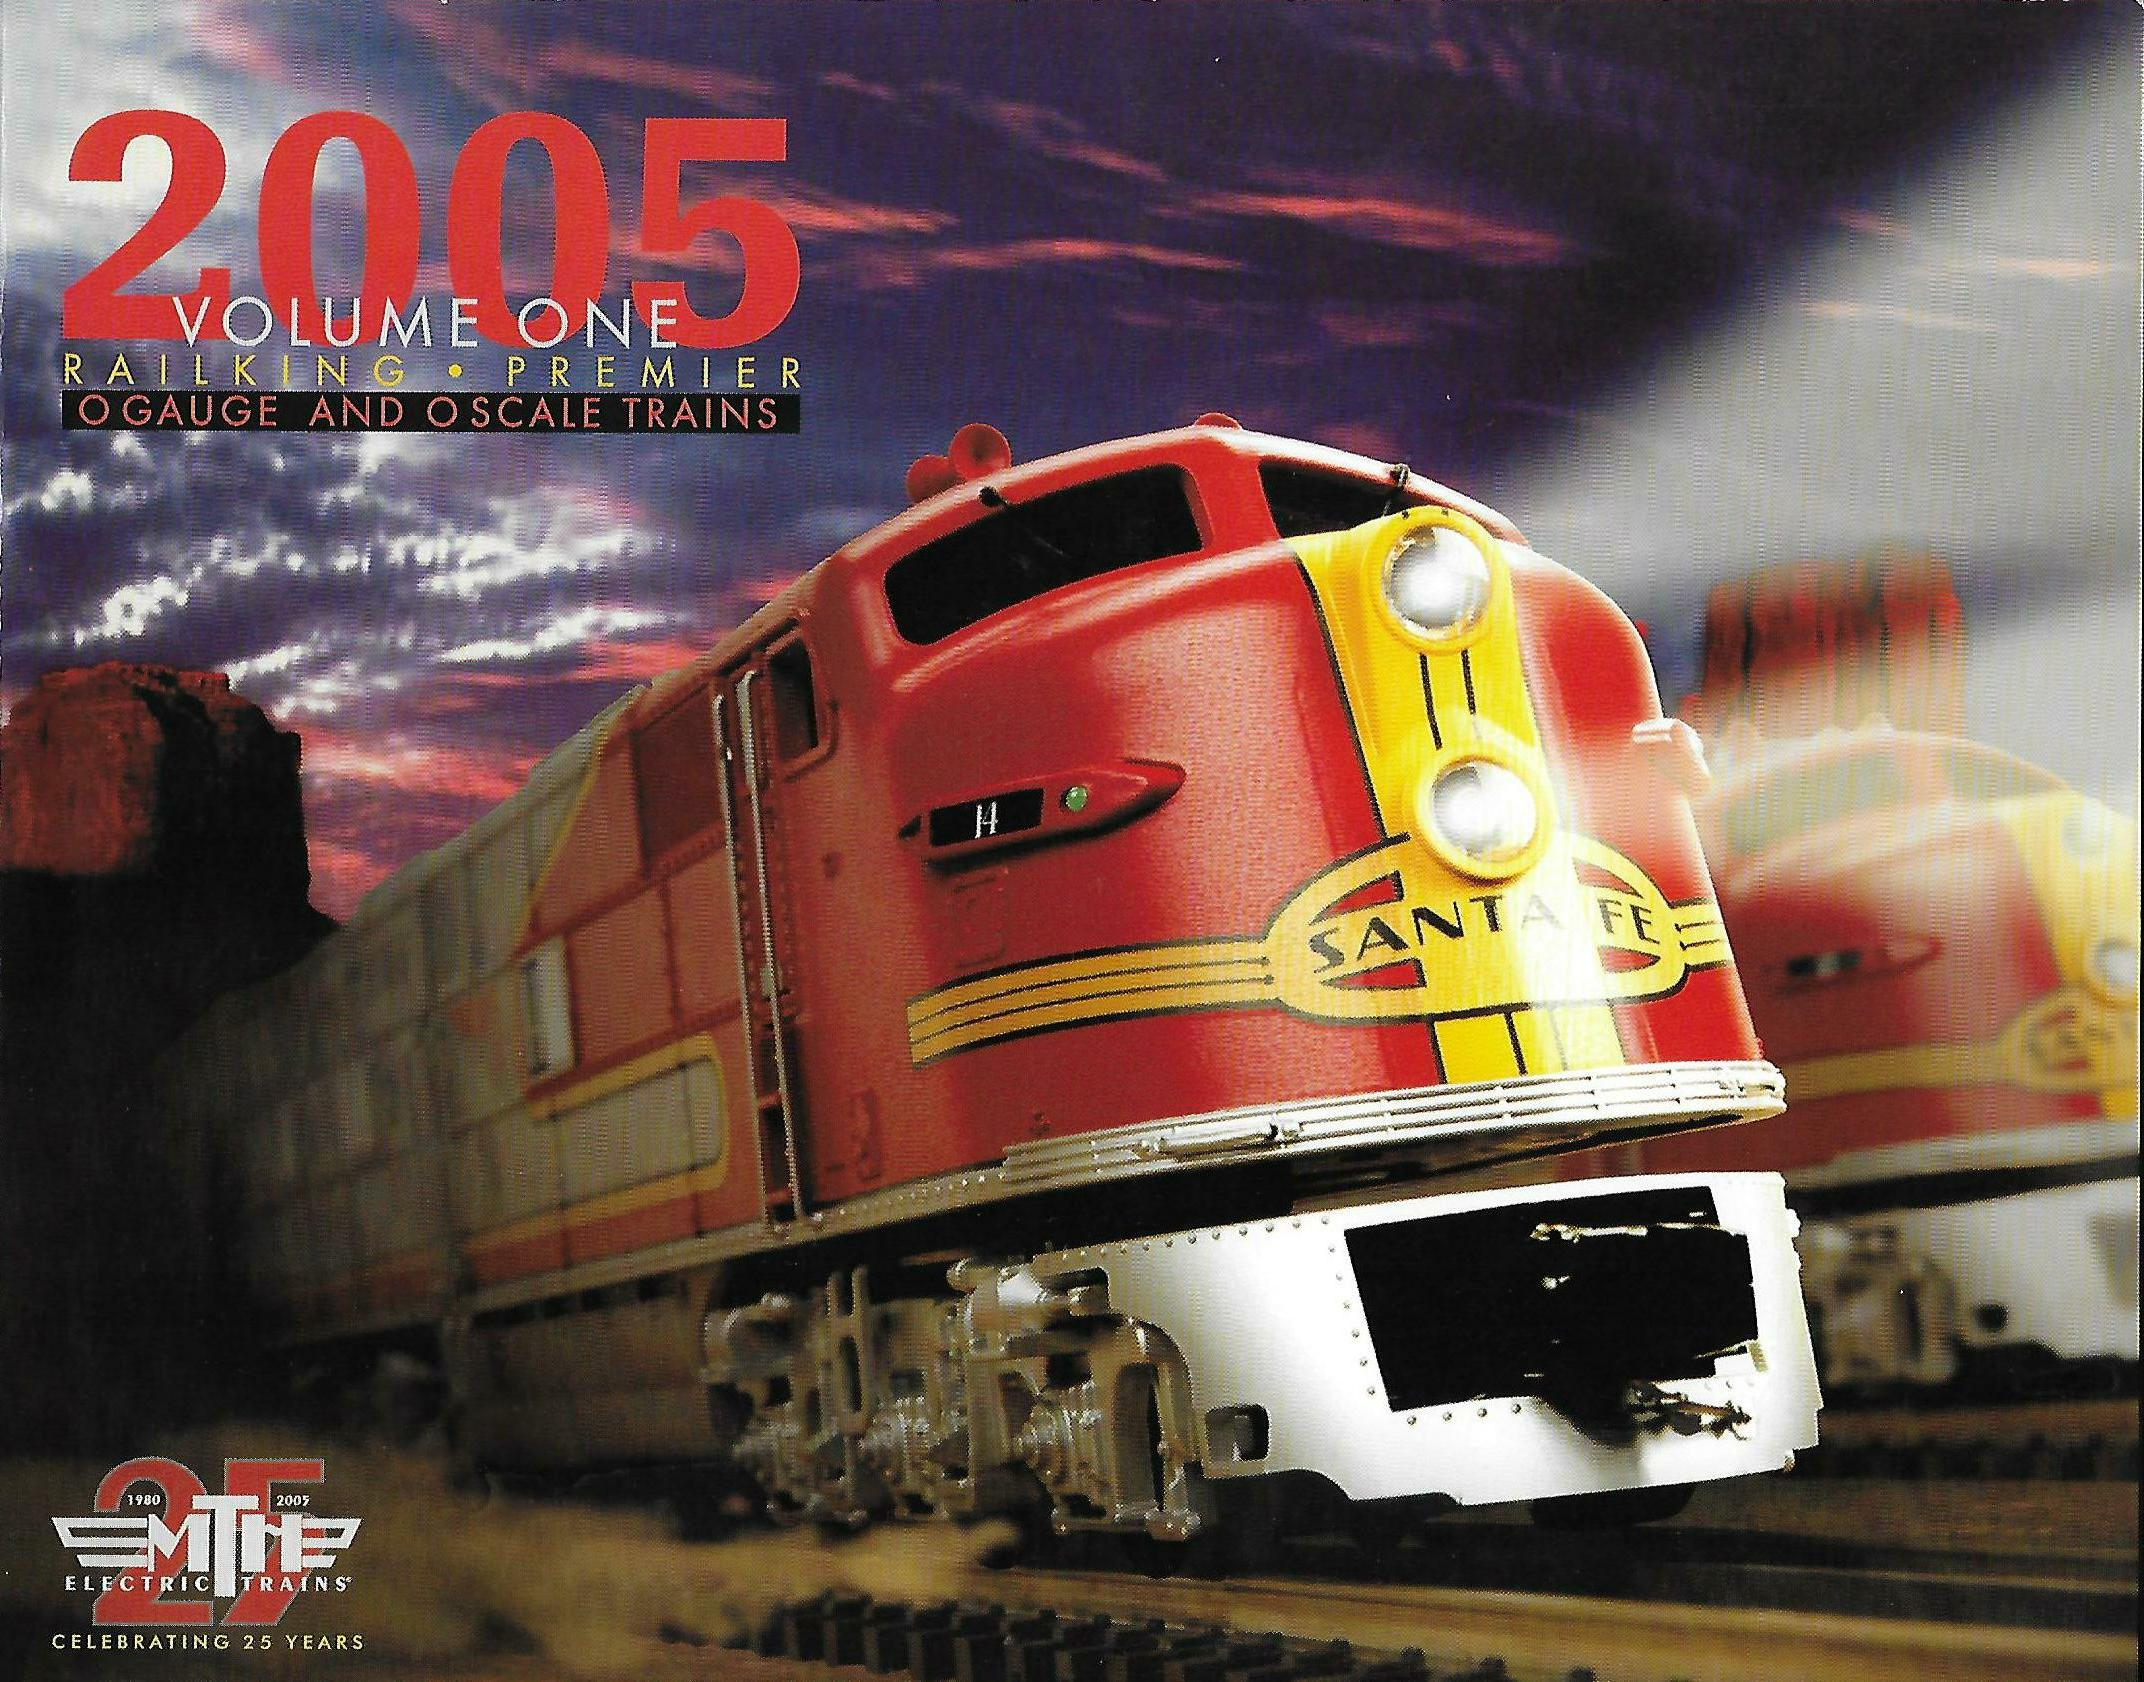 MTH 2005 Volume One Catalog image